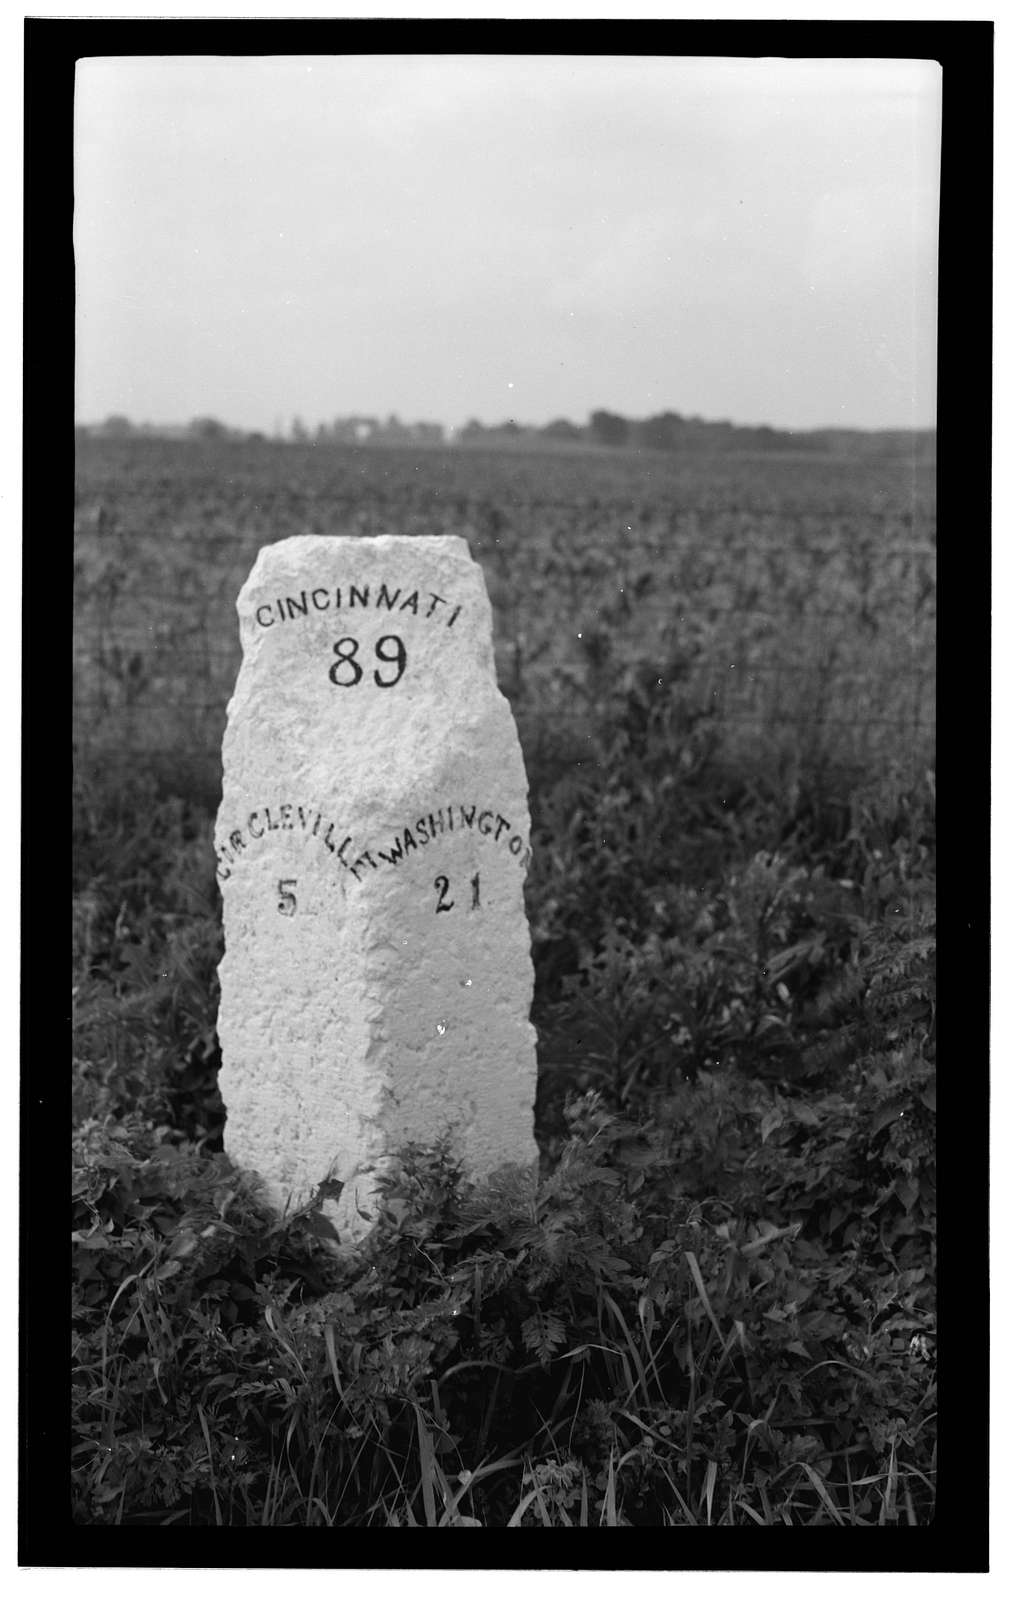 Milestone of Zane's Trace, Route 22, Kinderhook, Pickaway County, OH